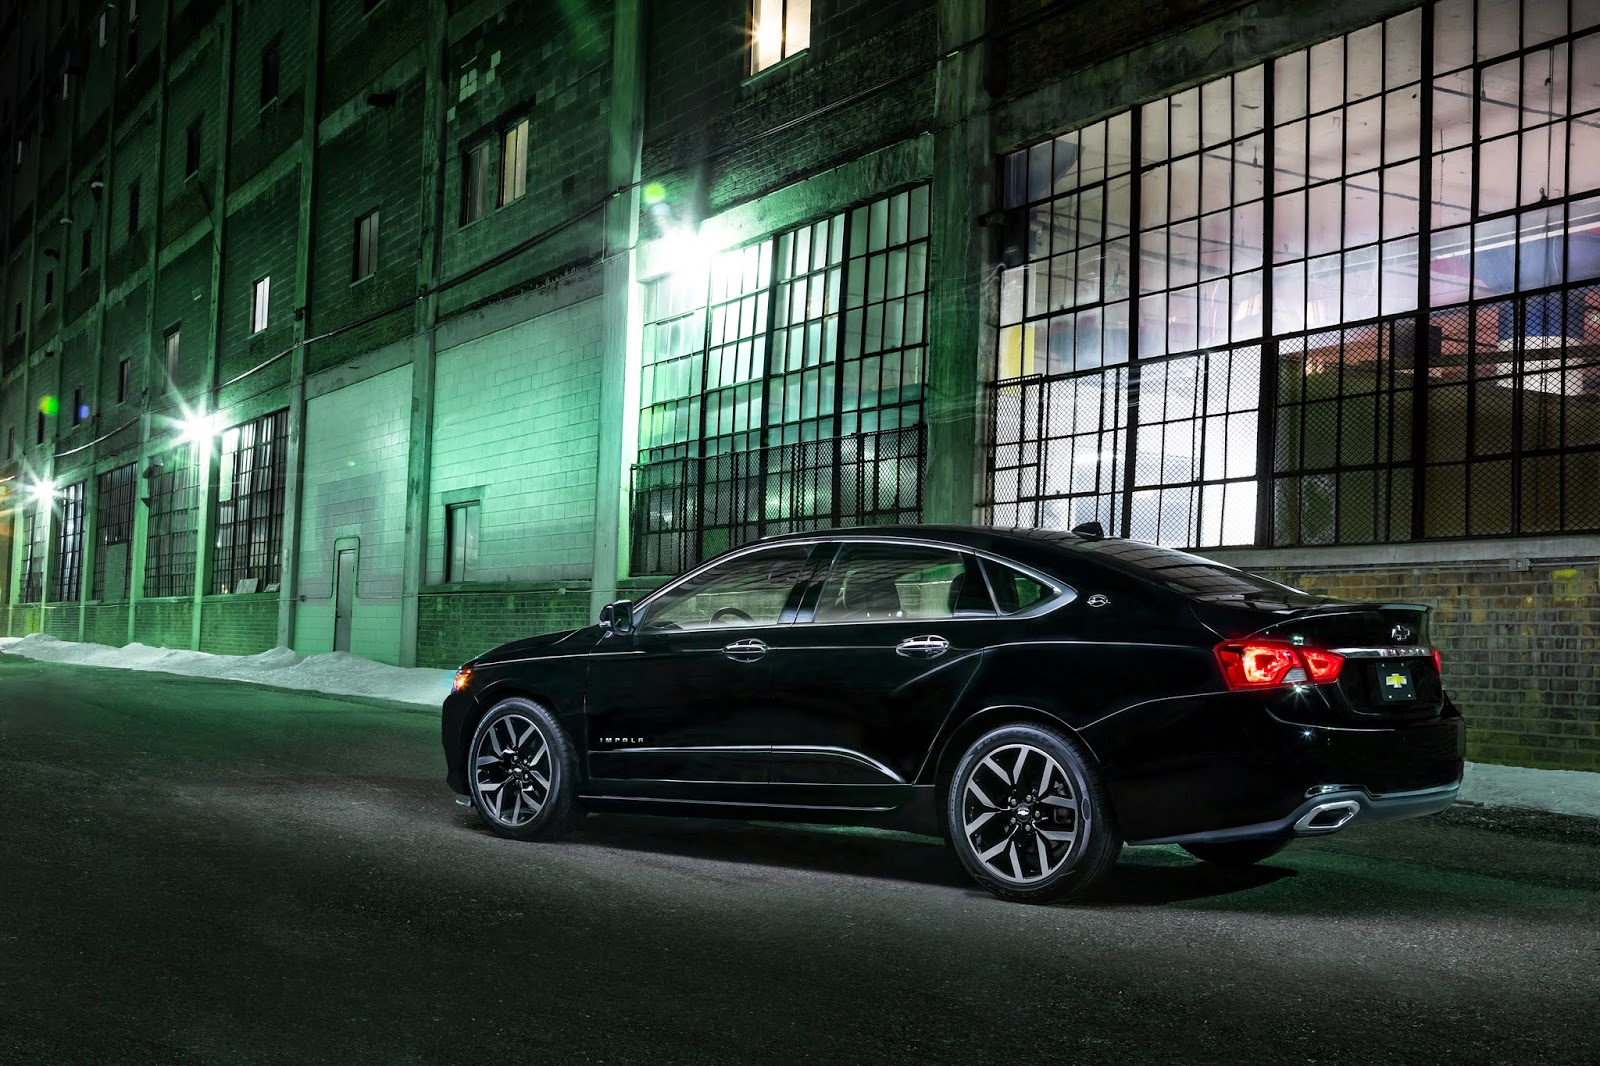 Chevrolet Impala Midnight Edition Has Entered Production